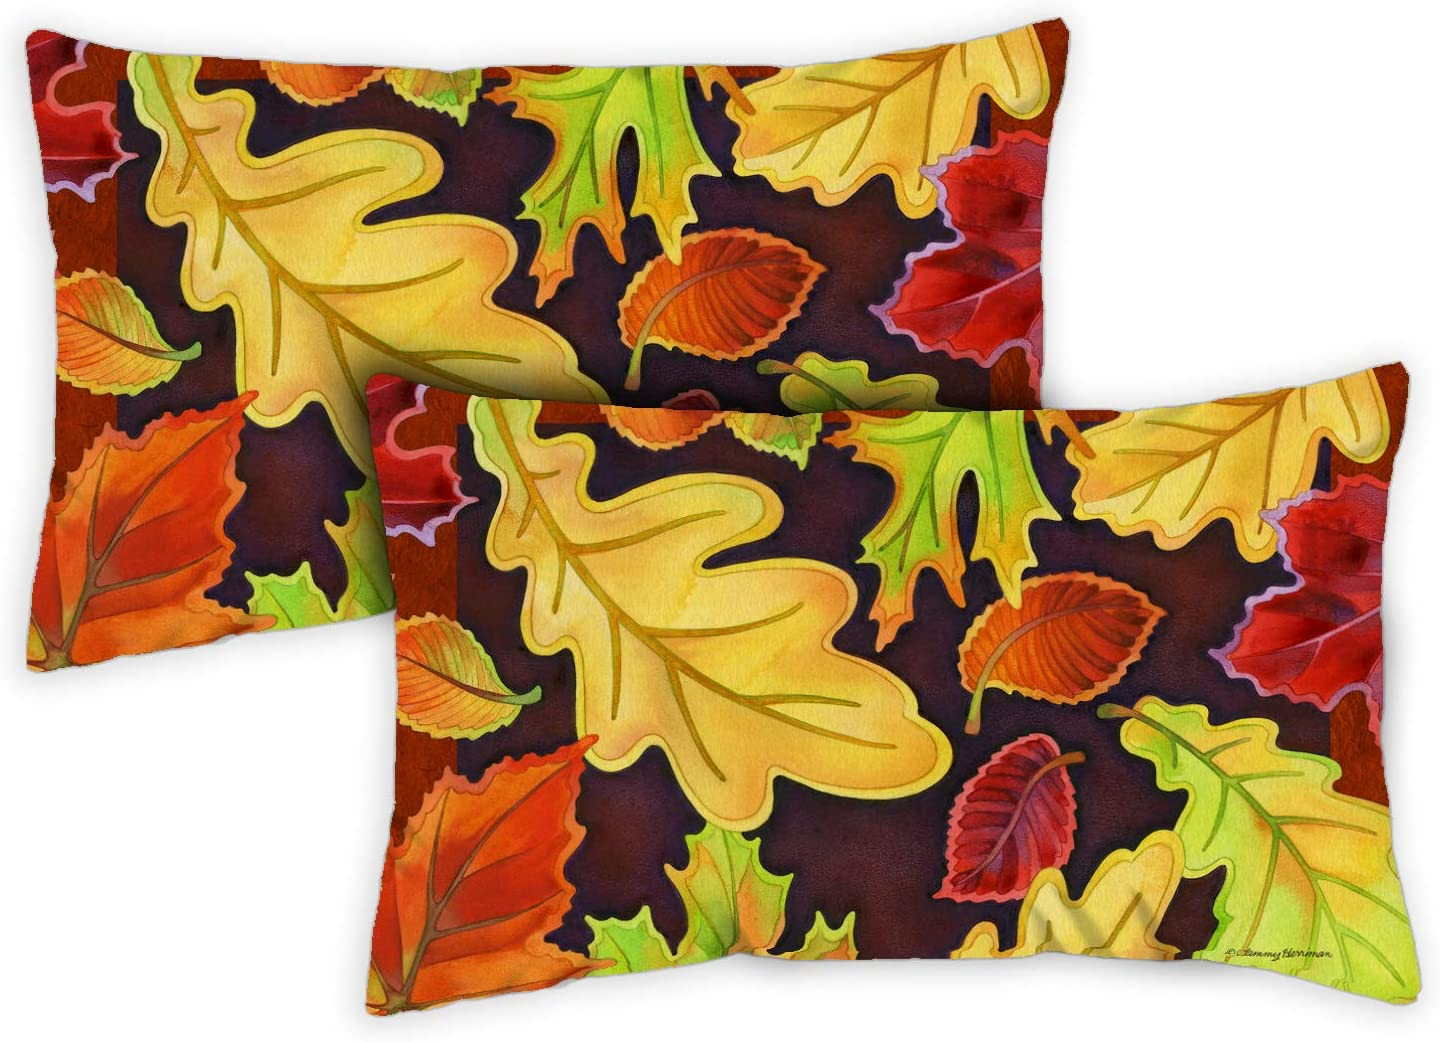 2-Pack Case Pillow Toland Home Garden 771246 Leafy Leaves 12 x 19 Inch Indoor//Outdoor